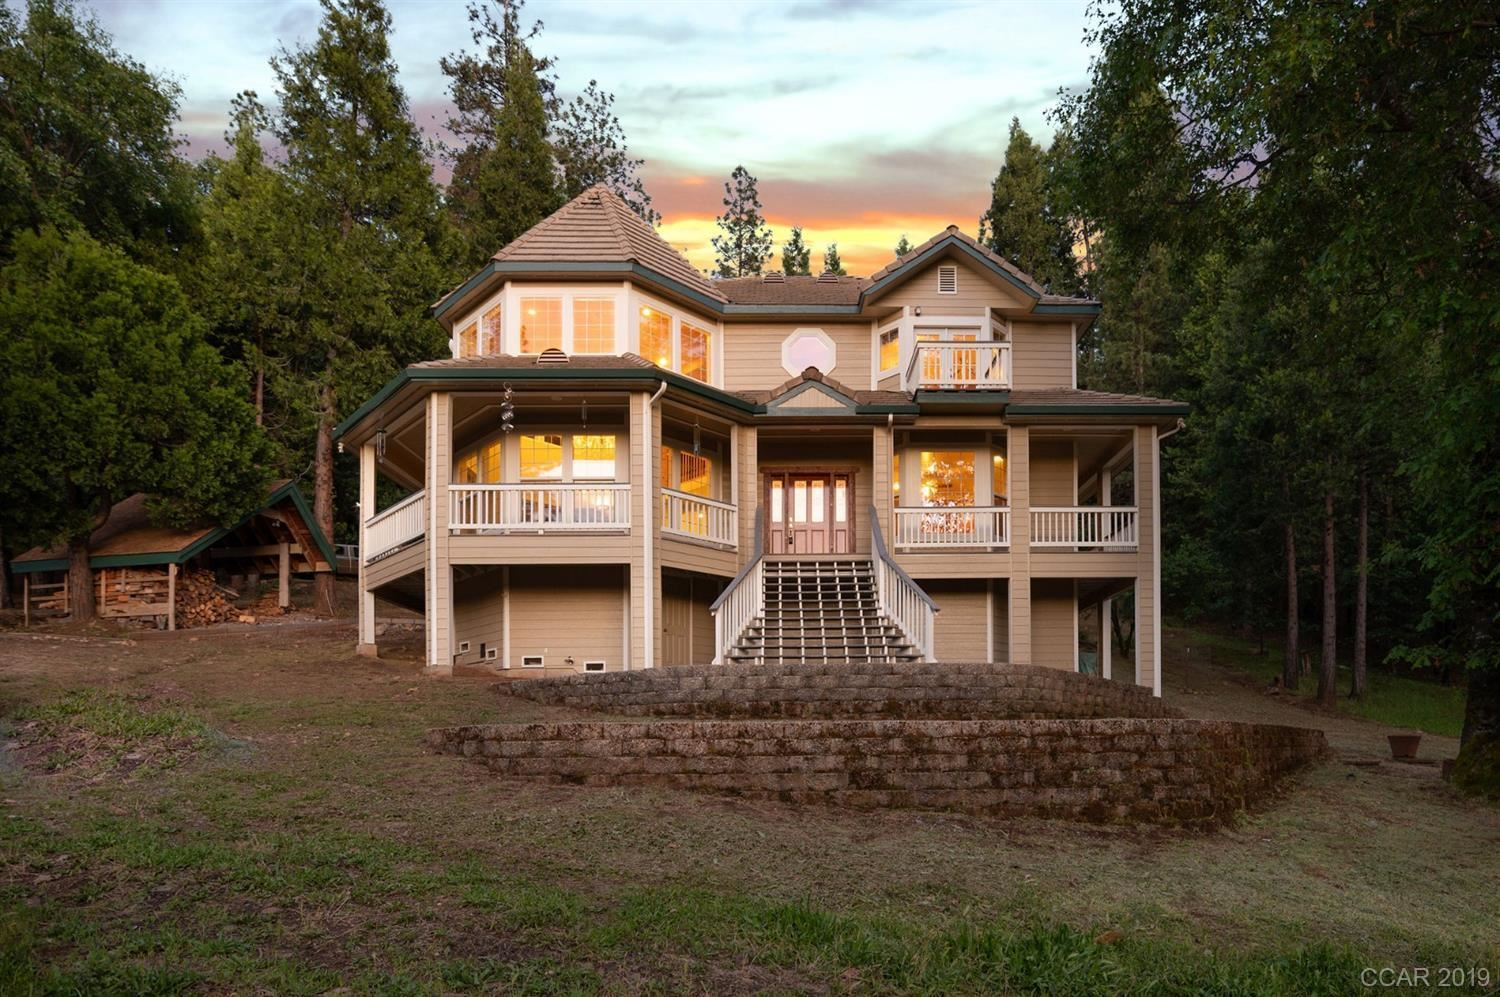 5048 Wylderidge Drive, Murphys, CA 95247 - MLS#: 2001120